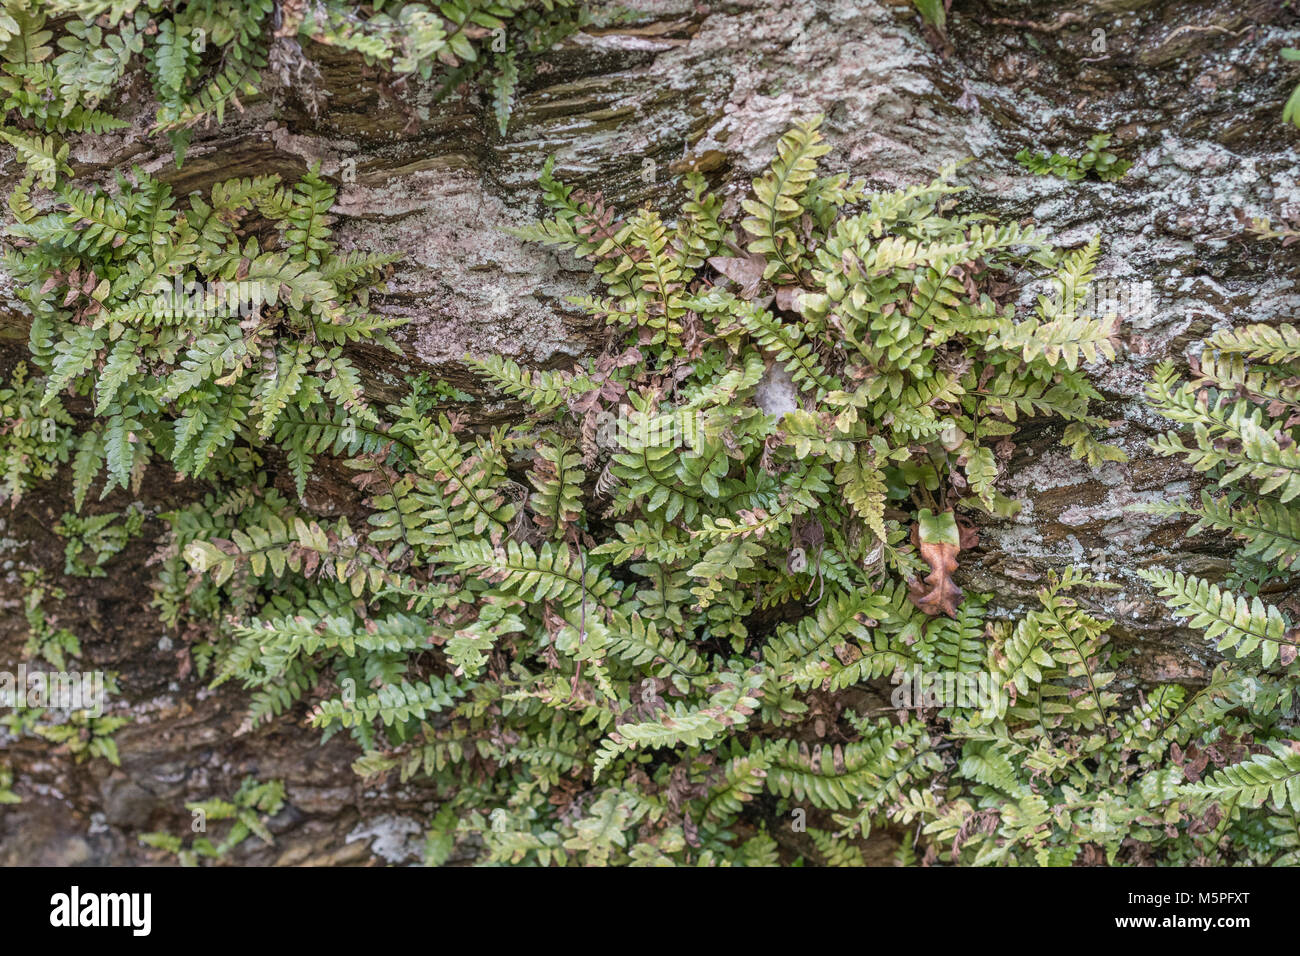 Ferns growing on shoreline cliffs with good freshwater source, in Cornwall. Believed to be Common Polypody (Polypodium - Stock Image